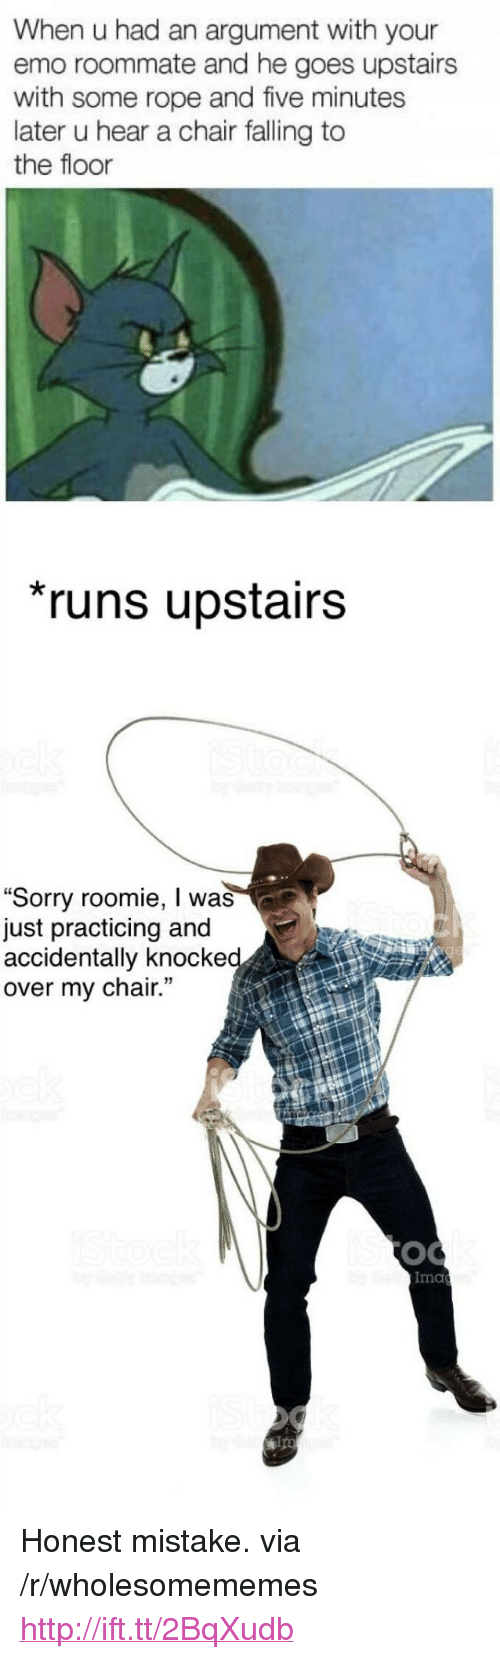 """roomie: When u had an argument with your  emo roommate and he goes upstairs  with some rope and five minutes  later u hear a chair falling to  the floor  runs upstairs  """"Sorry roomie, I was  just practicing and  accidentally knocke  over my chair.  Ima  ips <p>Honest mistake. via /r/wholesomememes <a href=""""http://ift.tt/2BqXudb"""">http://ift.tt/2BqXudb</a></p>"""